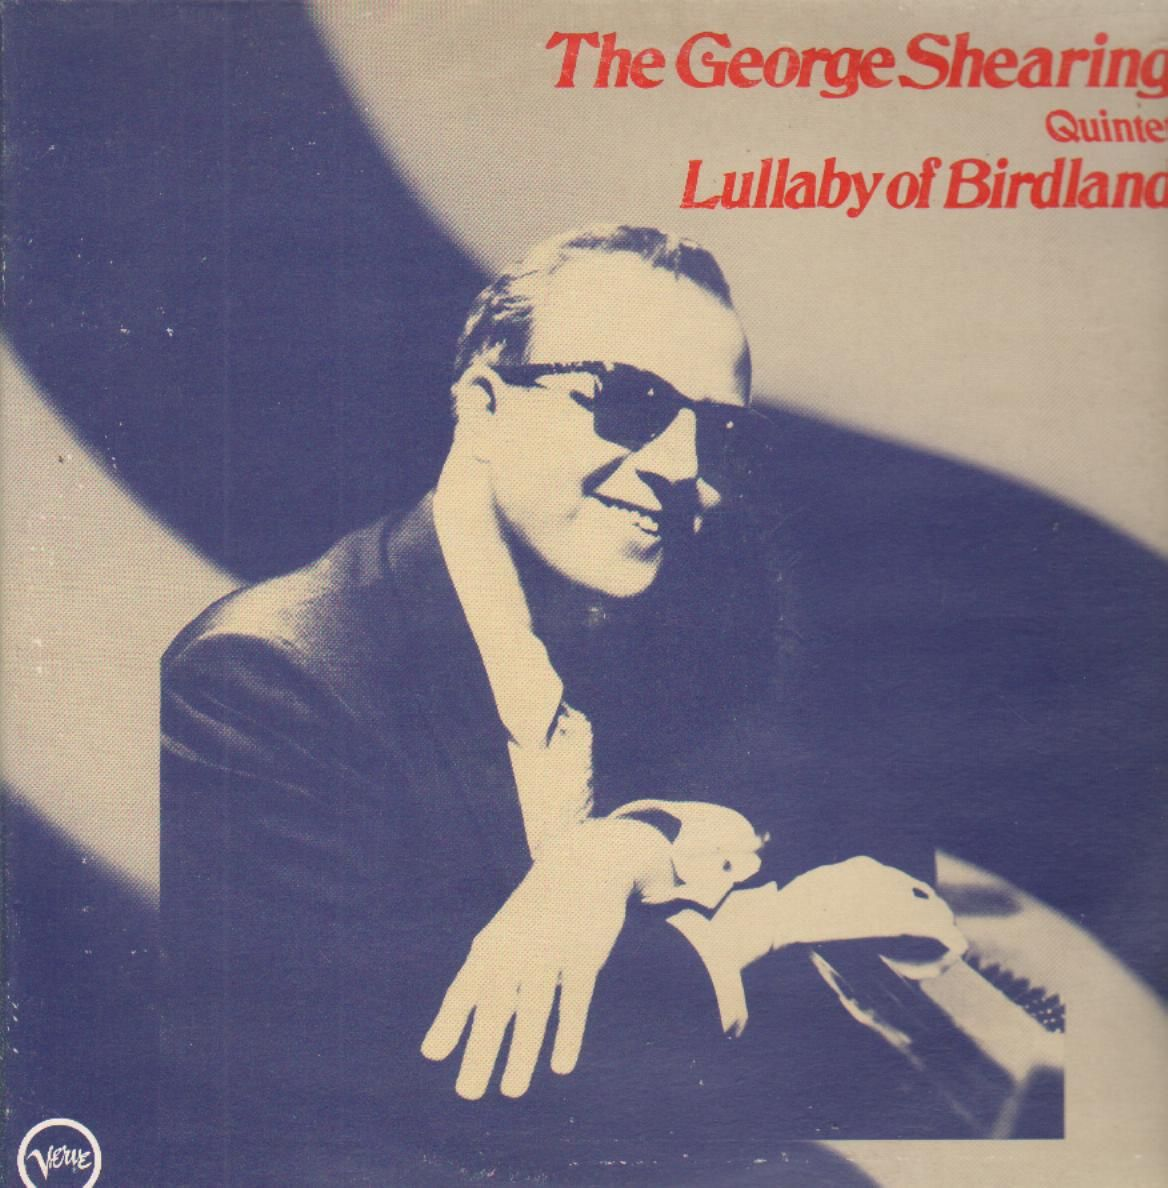 George Shearing's quote #3